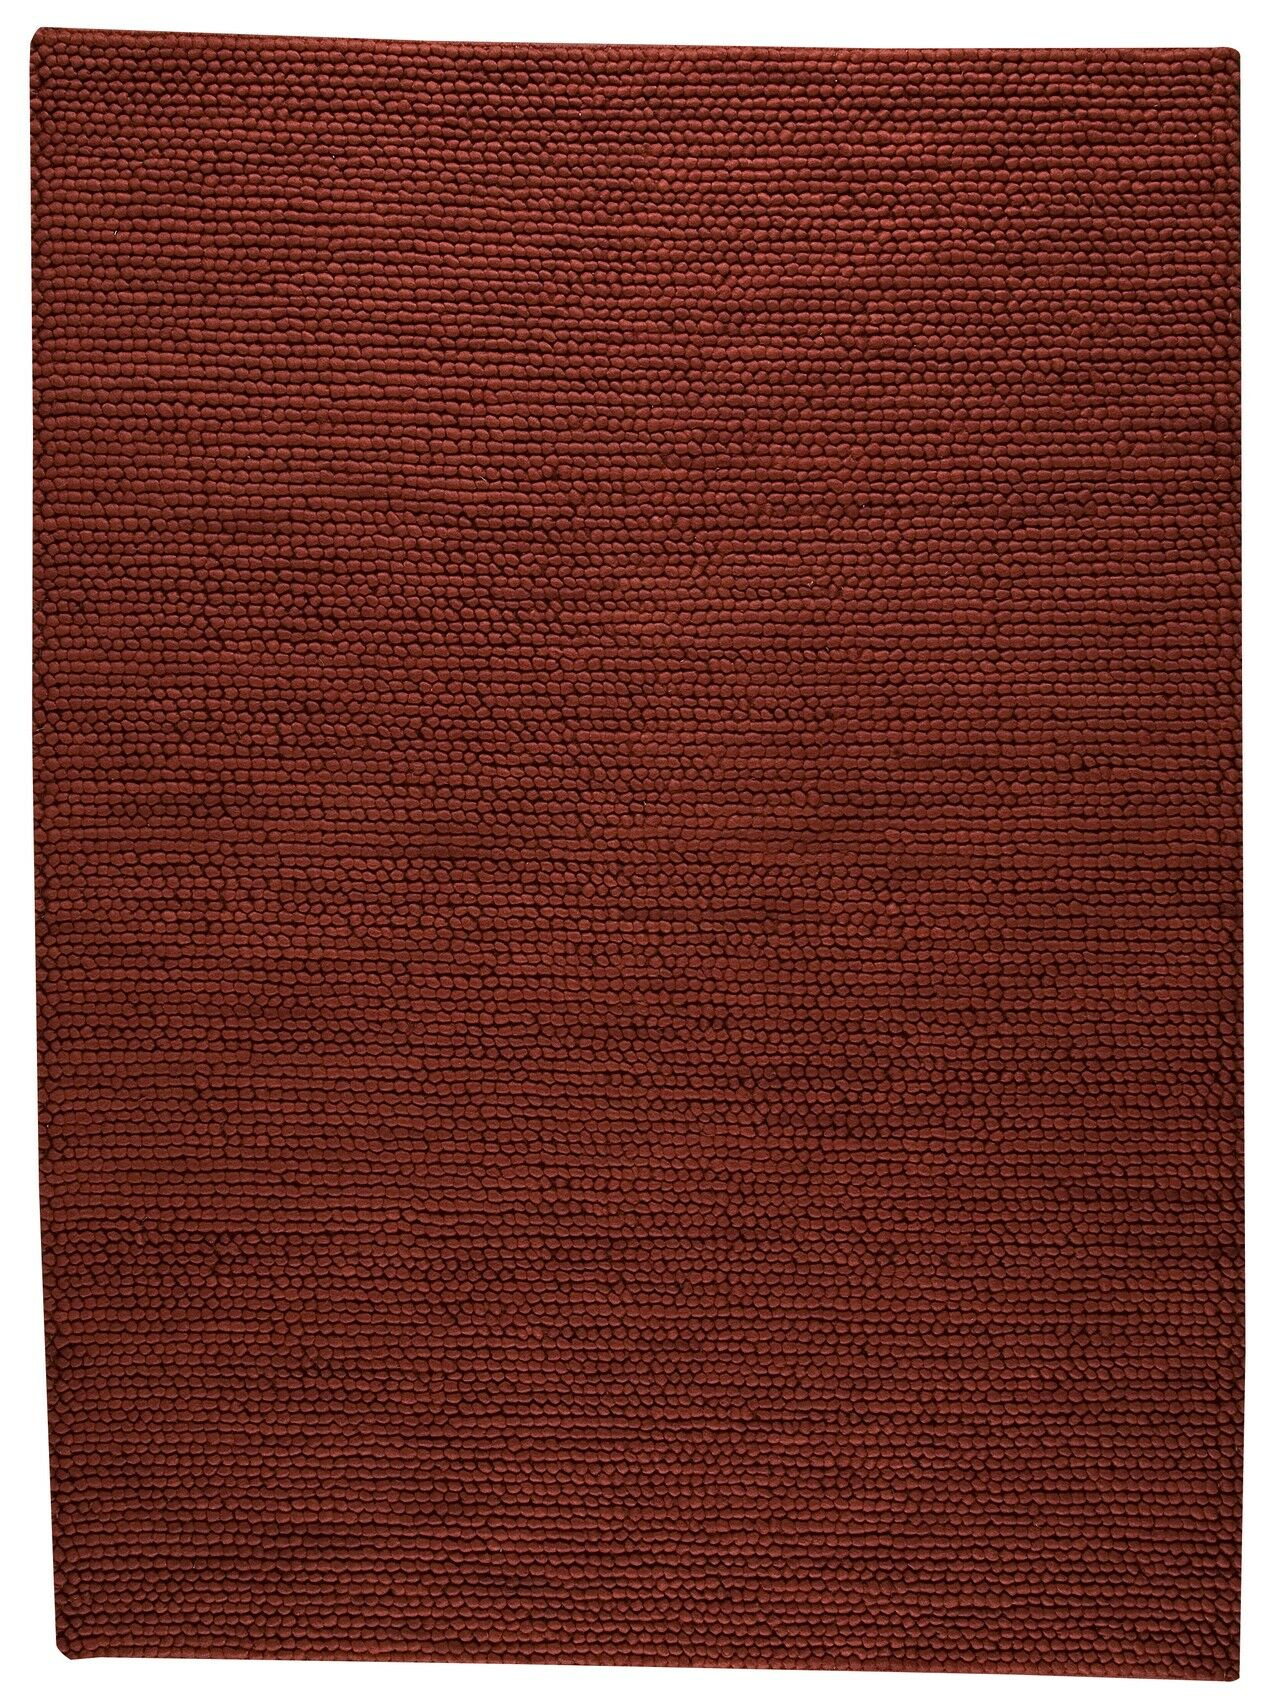 Hoefer Hand-Woven Red Area Rug Rug Size: 3' x 5'4